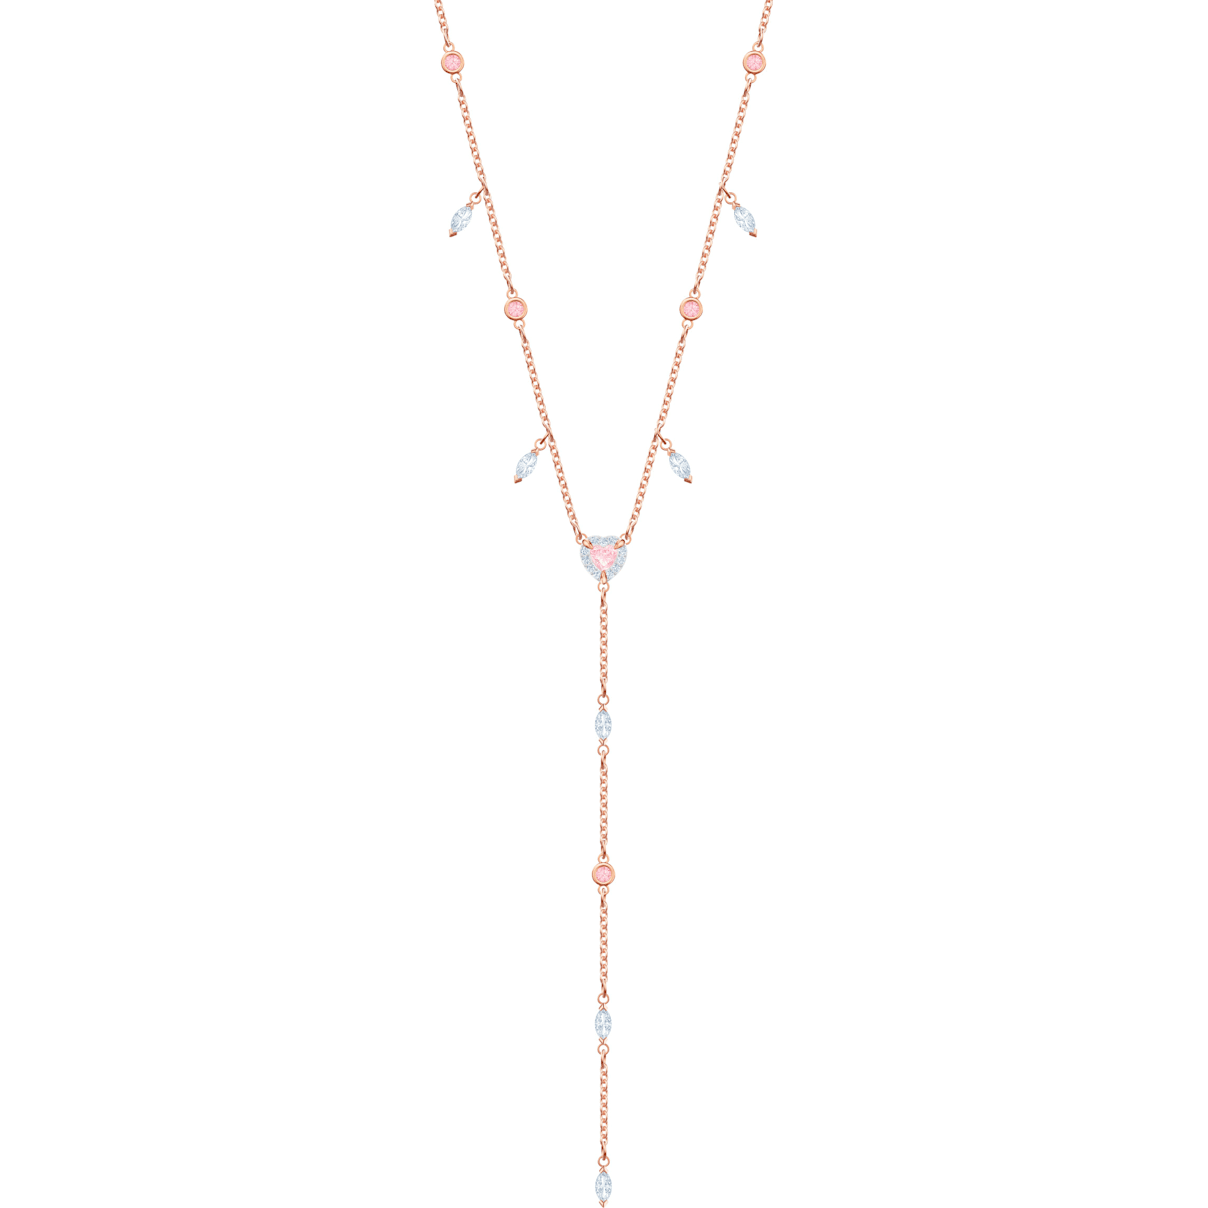 Swarovski One Y Necklace, Multi-colored, Rose-gold tone plated